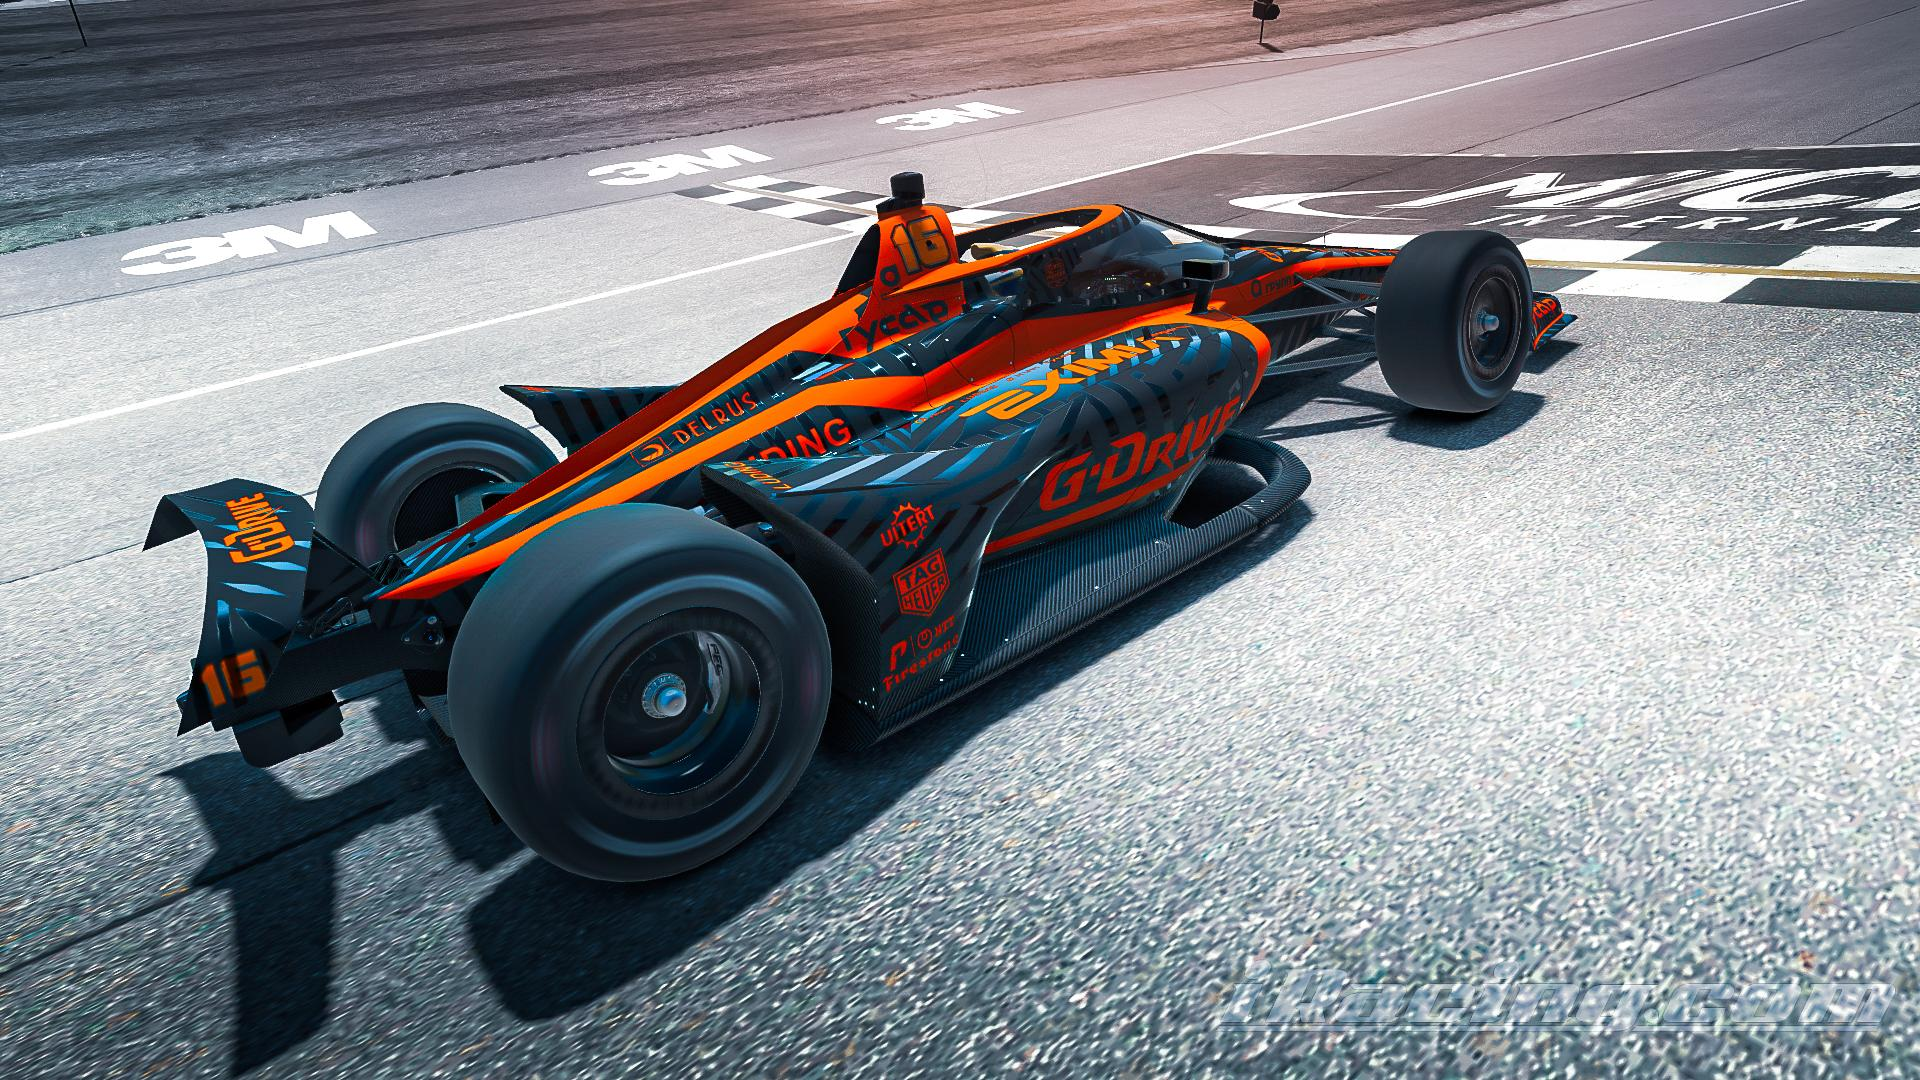 Preview of G-Drive Racing INDYCAR by Roman Rusinov